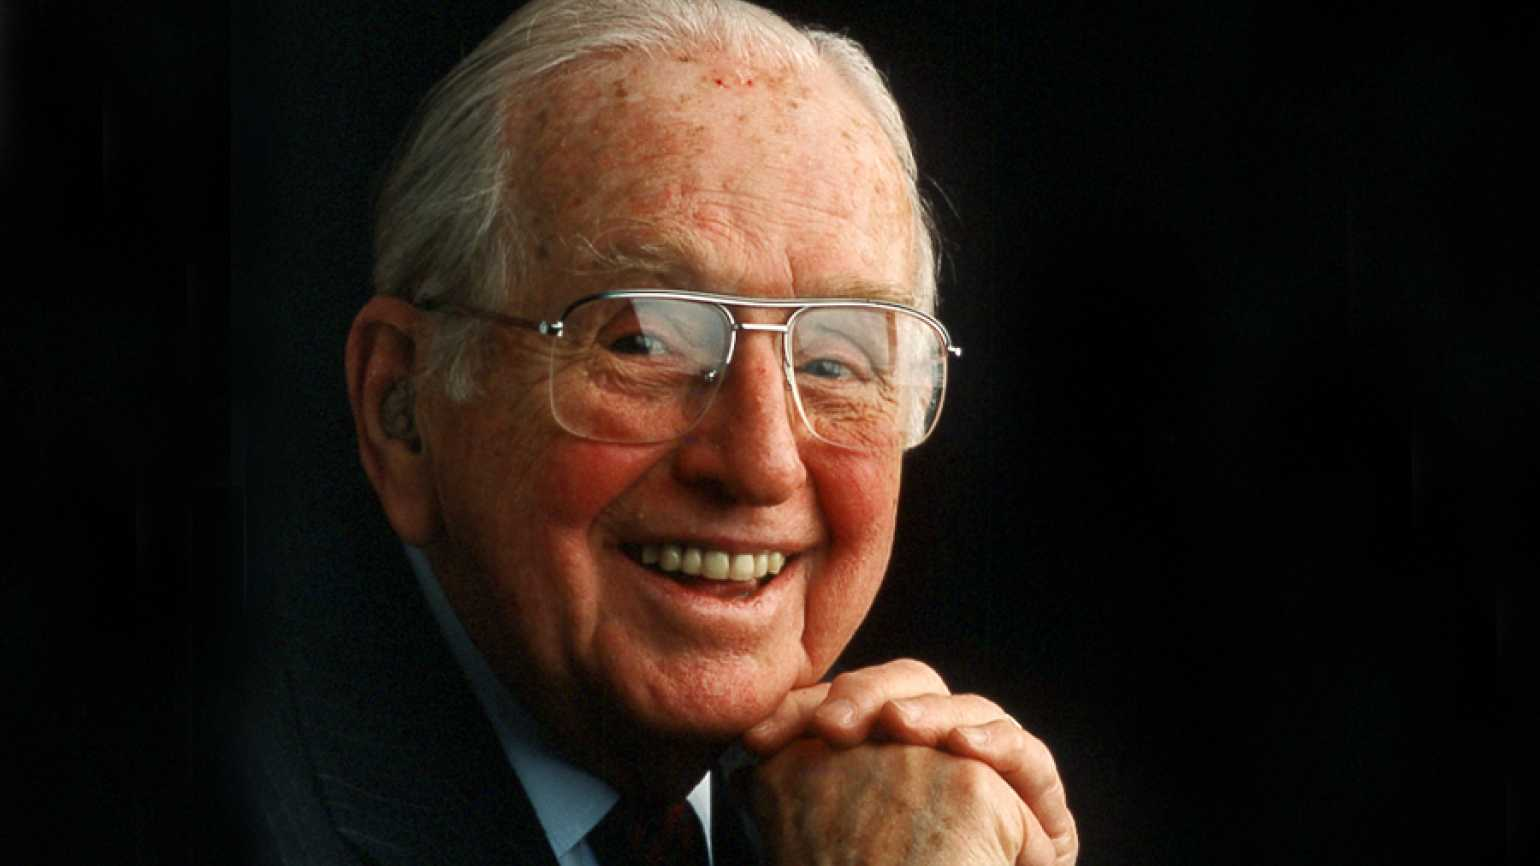 Guideposts founder Norman Vincent Peale